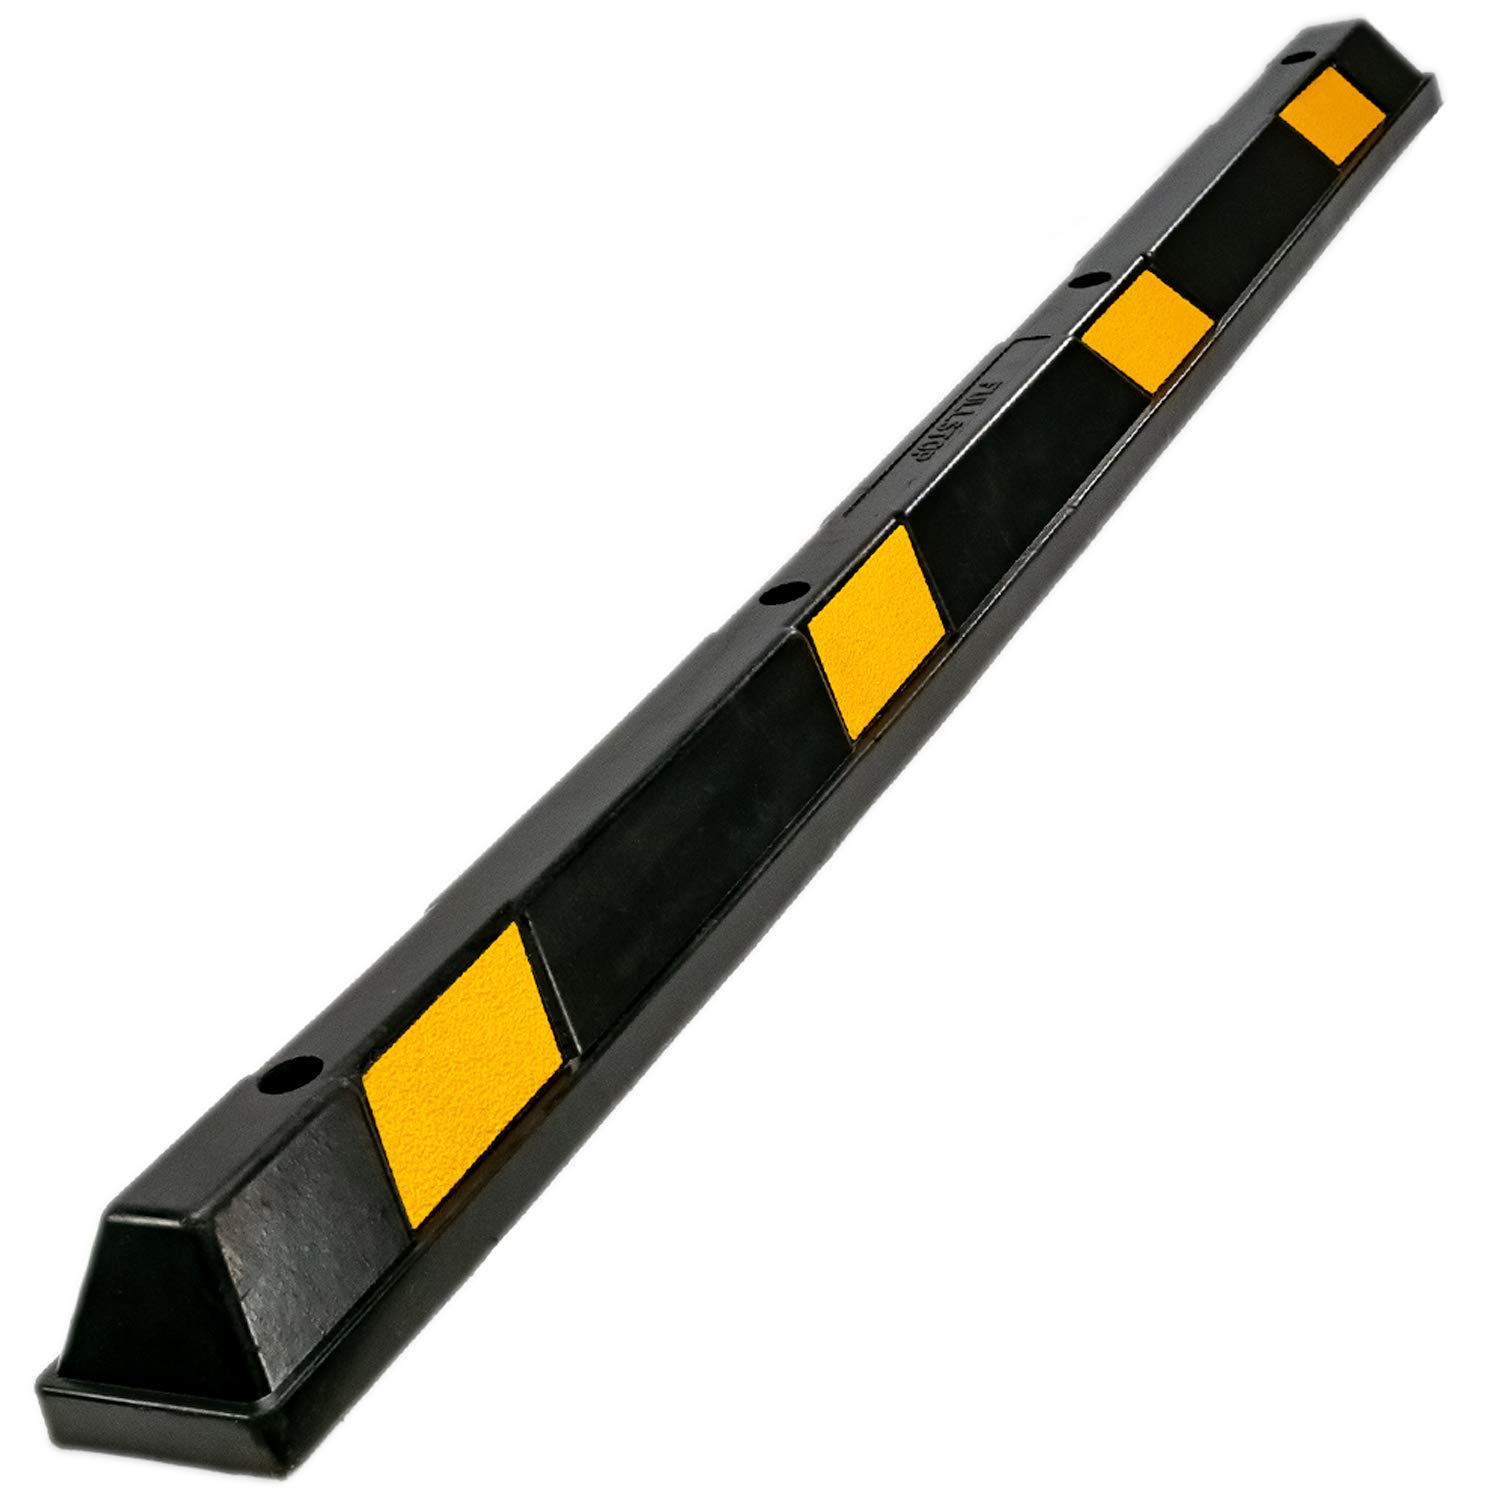 Fullstop Vehicle Parking Block, Black Commercial Heavy Duty Rubber Curb with 8 ScatterGlass Reflective Yellow Targets for Car, Truck, RV and Trailer Stop Aid, 72 Inches Long x 4 Inches High by Fullstop (Image #9)